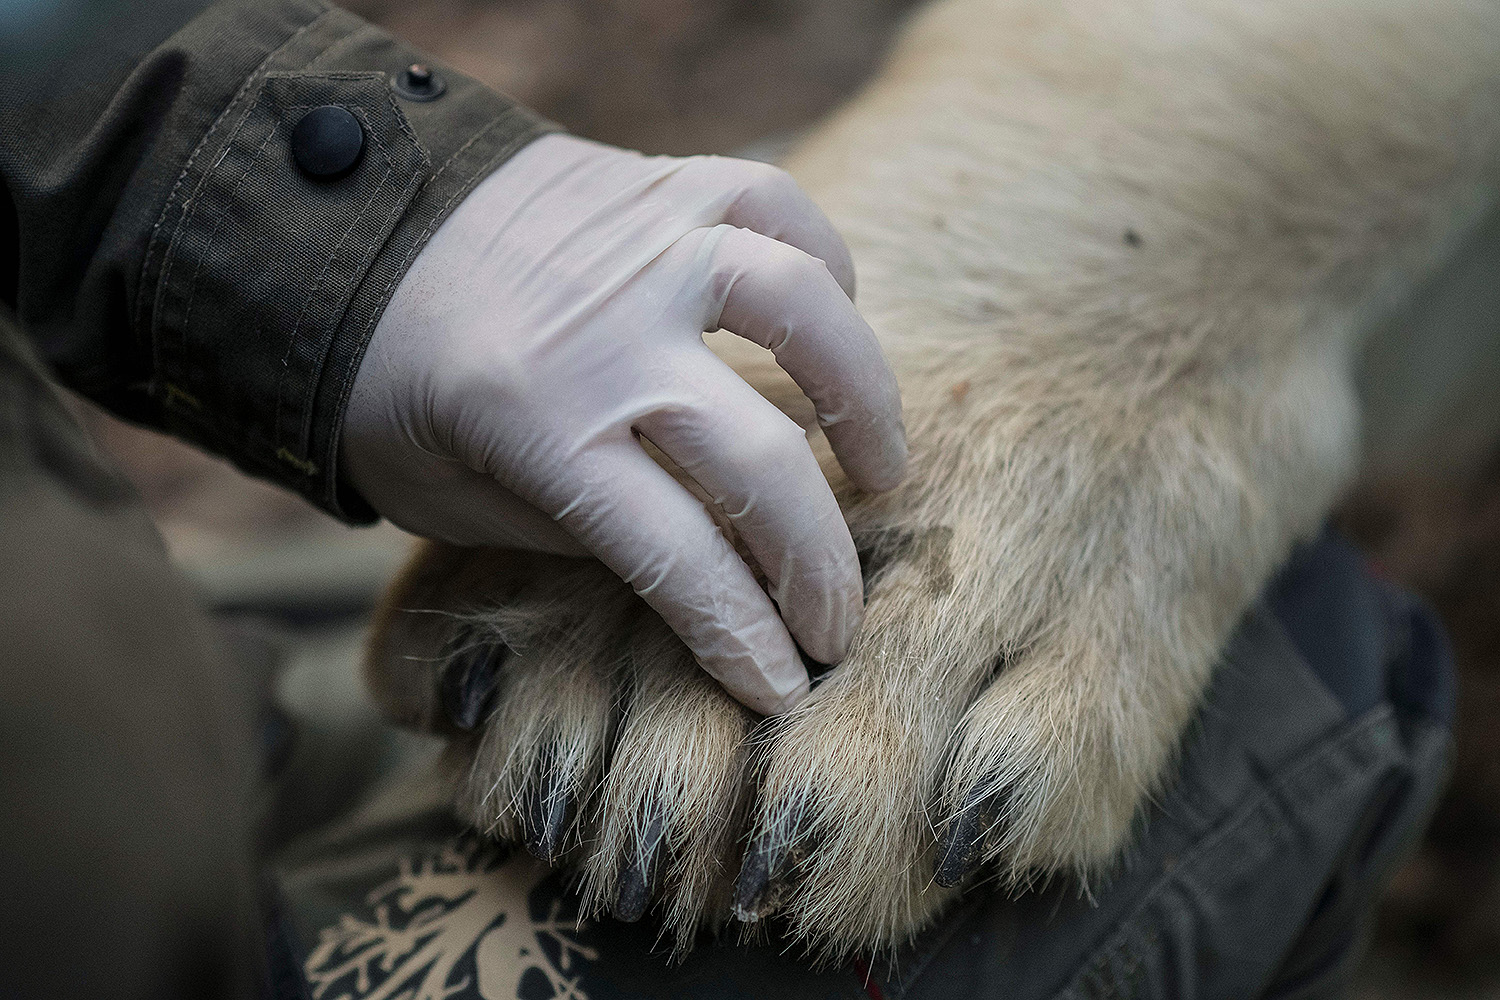 A veterinarian from the Mulhouse Zoo in eastern France examines the paws of a young sedated polar bear named Nanuq before transferring him to the Cerza Zoo in Normandy on April 9. SEBASTIEN BOZON/AFP via Getty Images